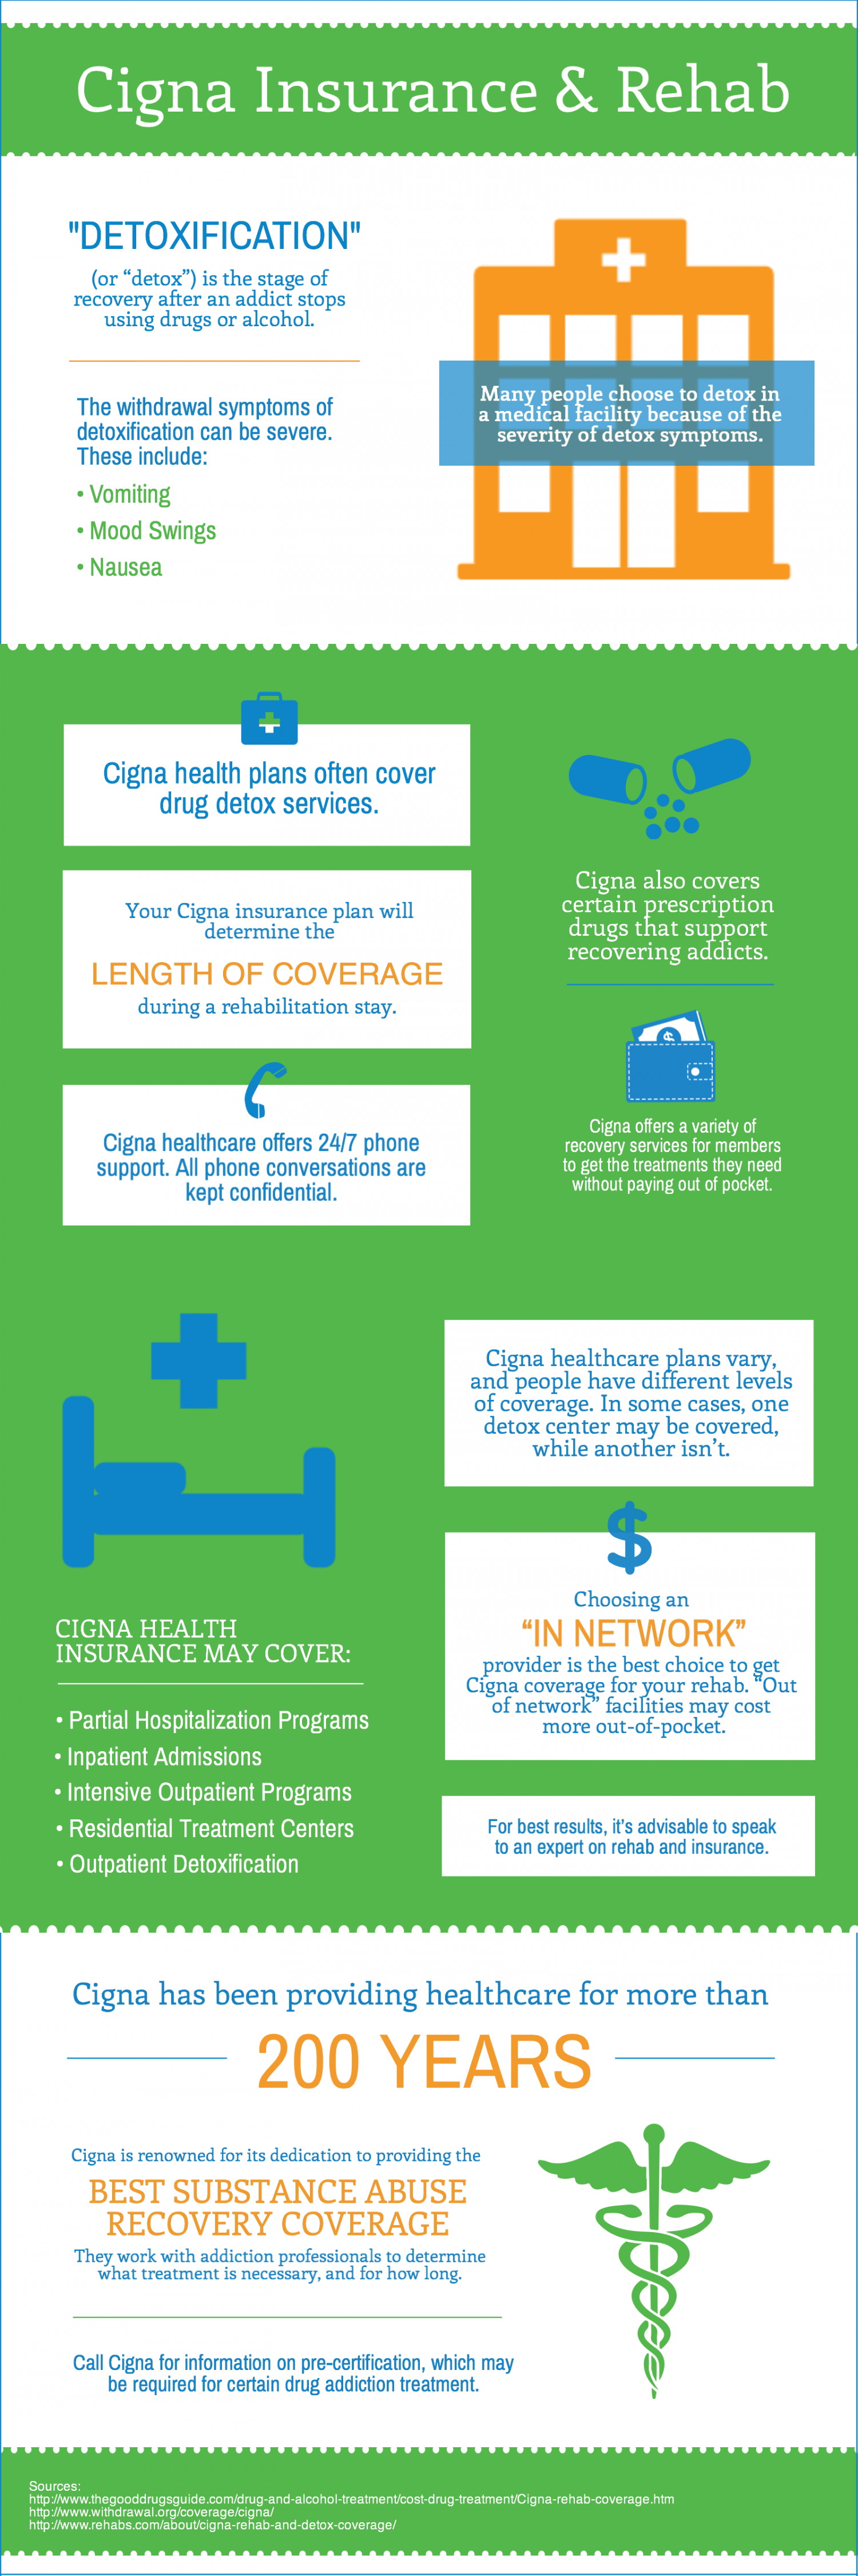 what is cigna health insurance